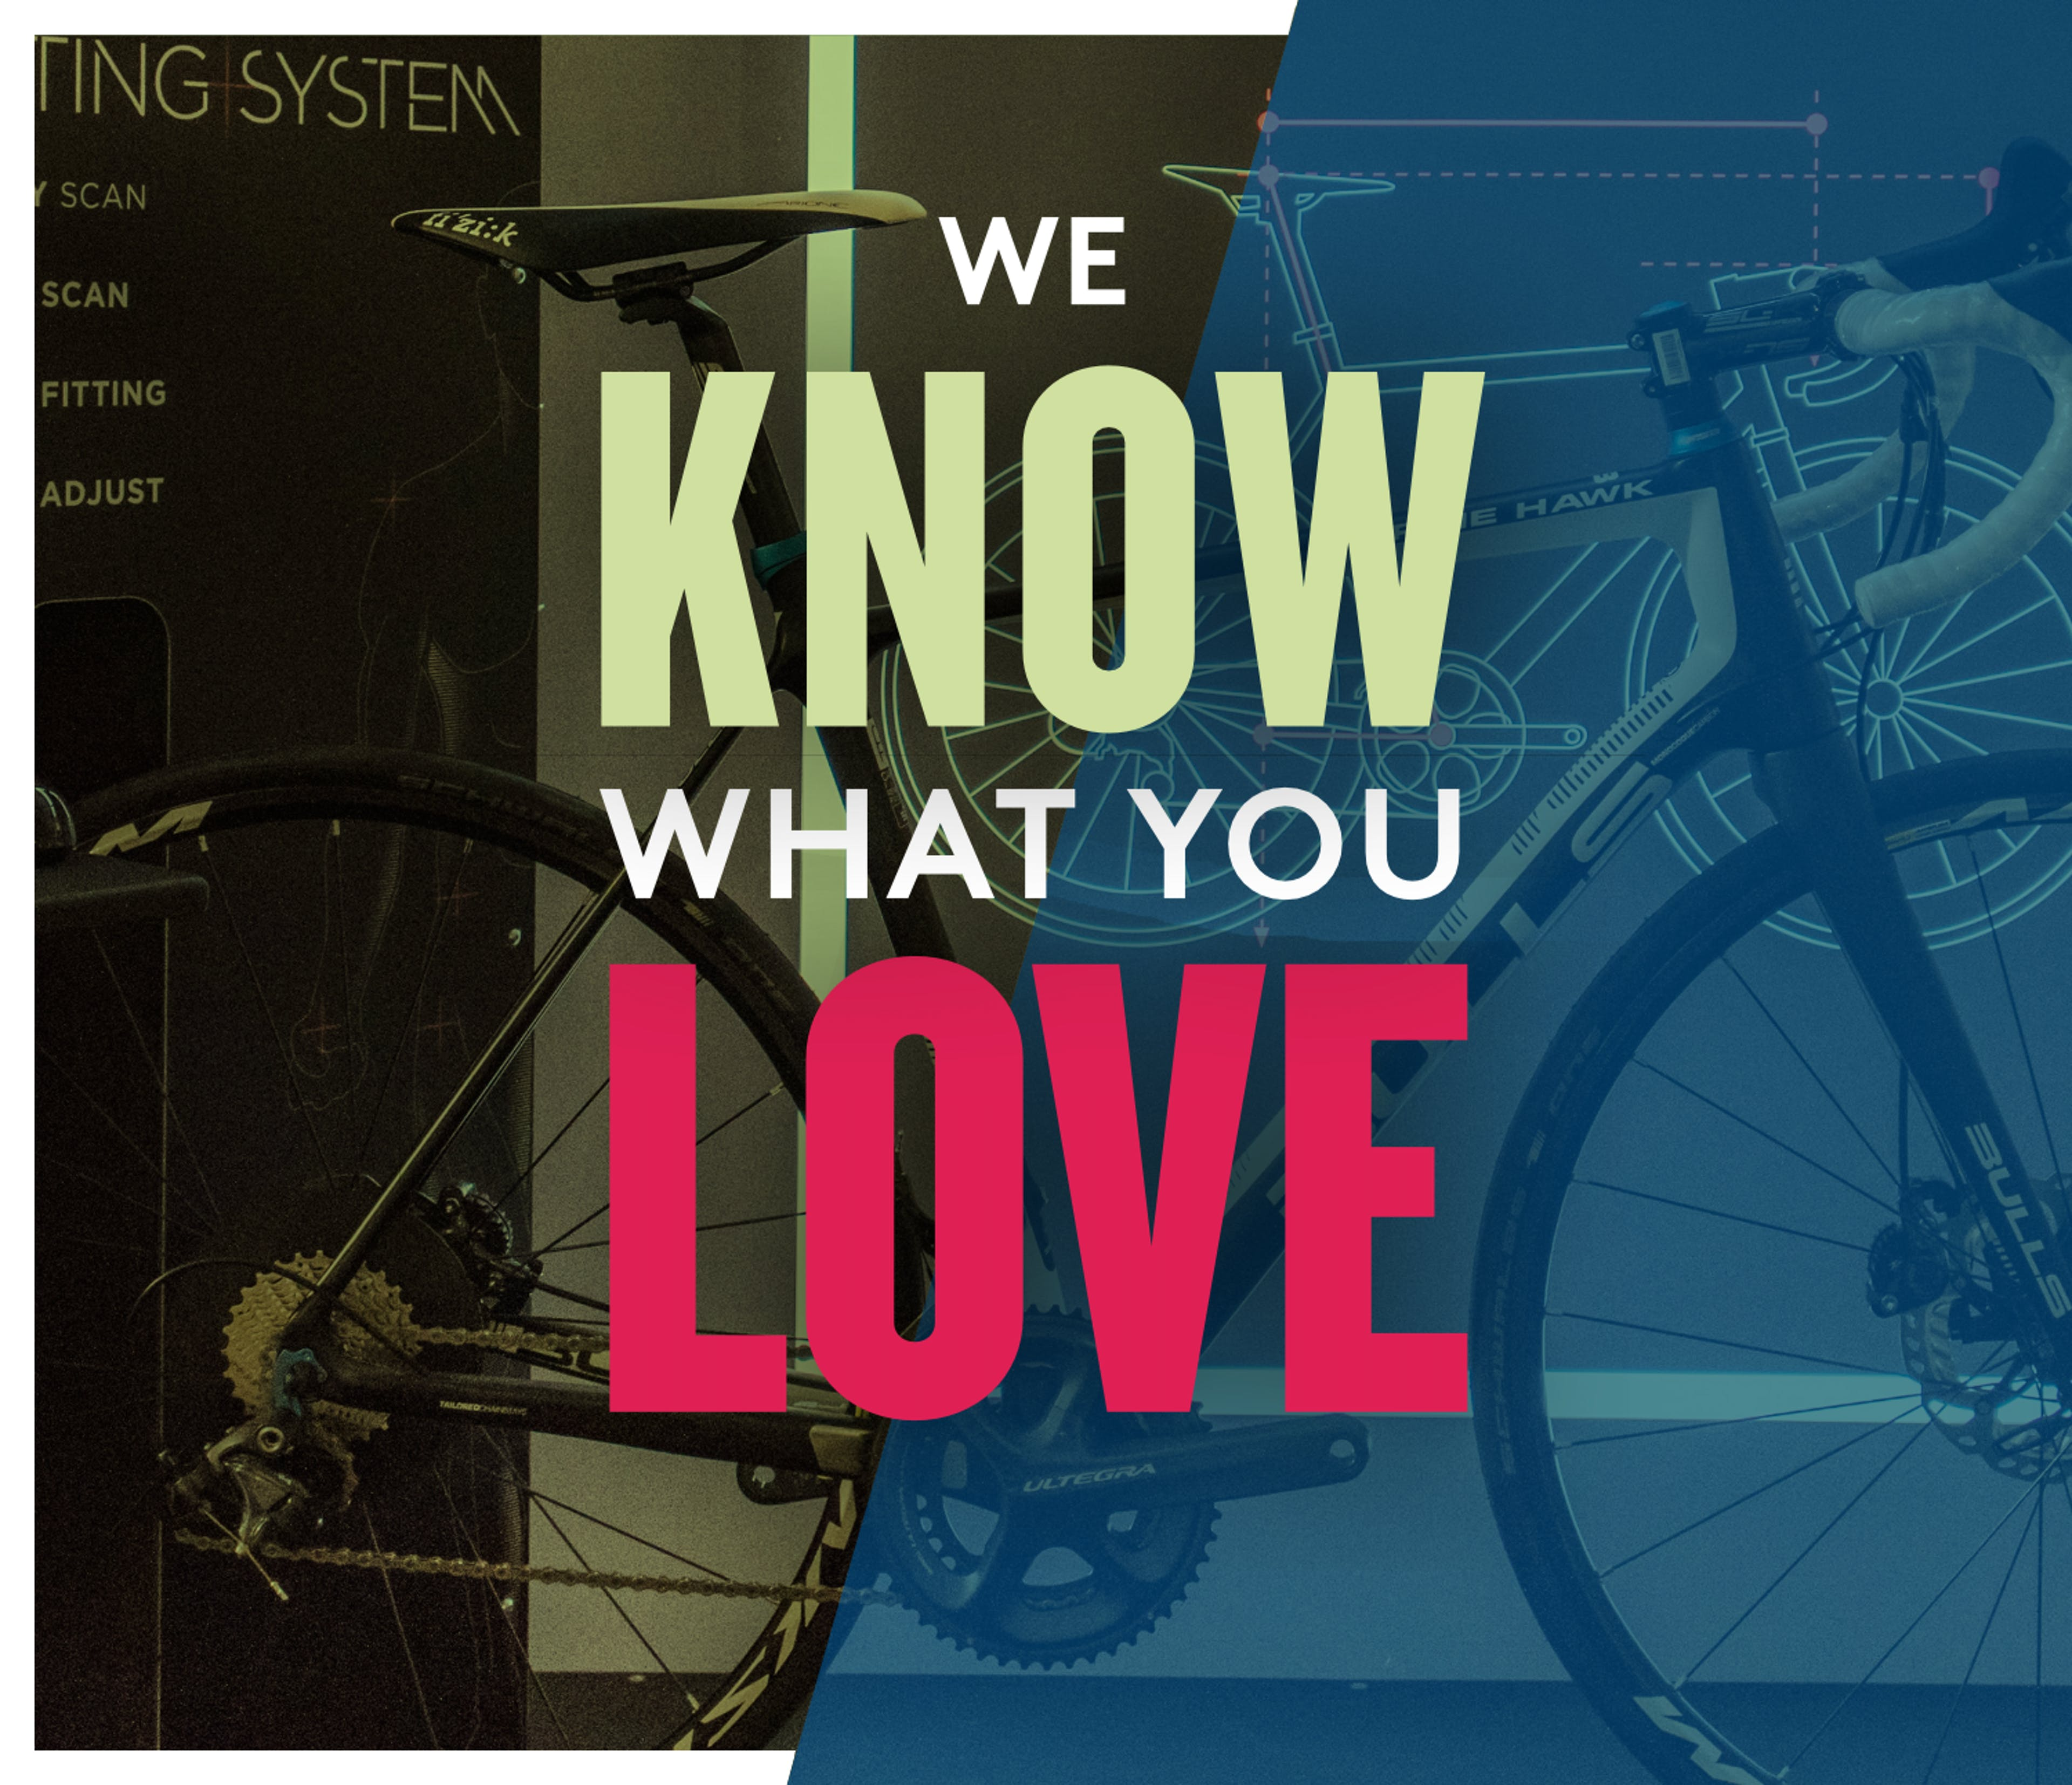 We know what you love